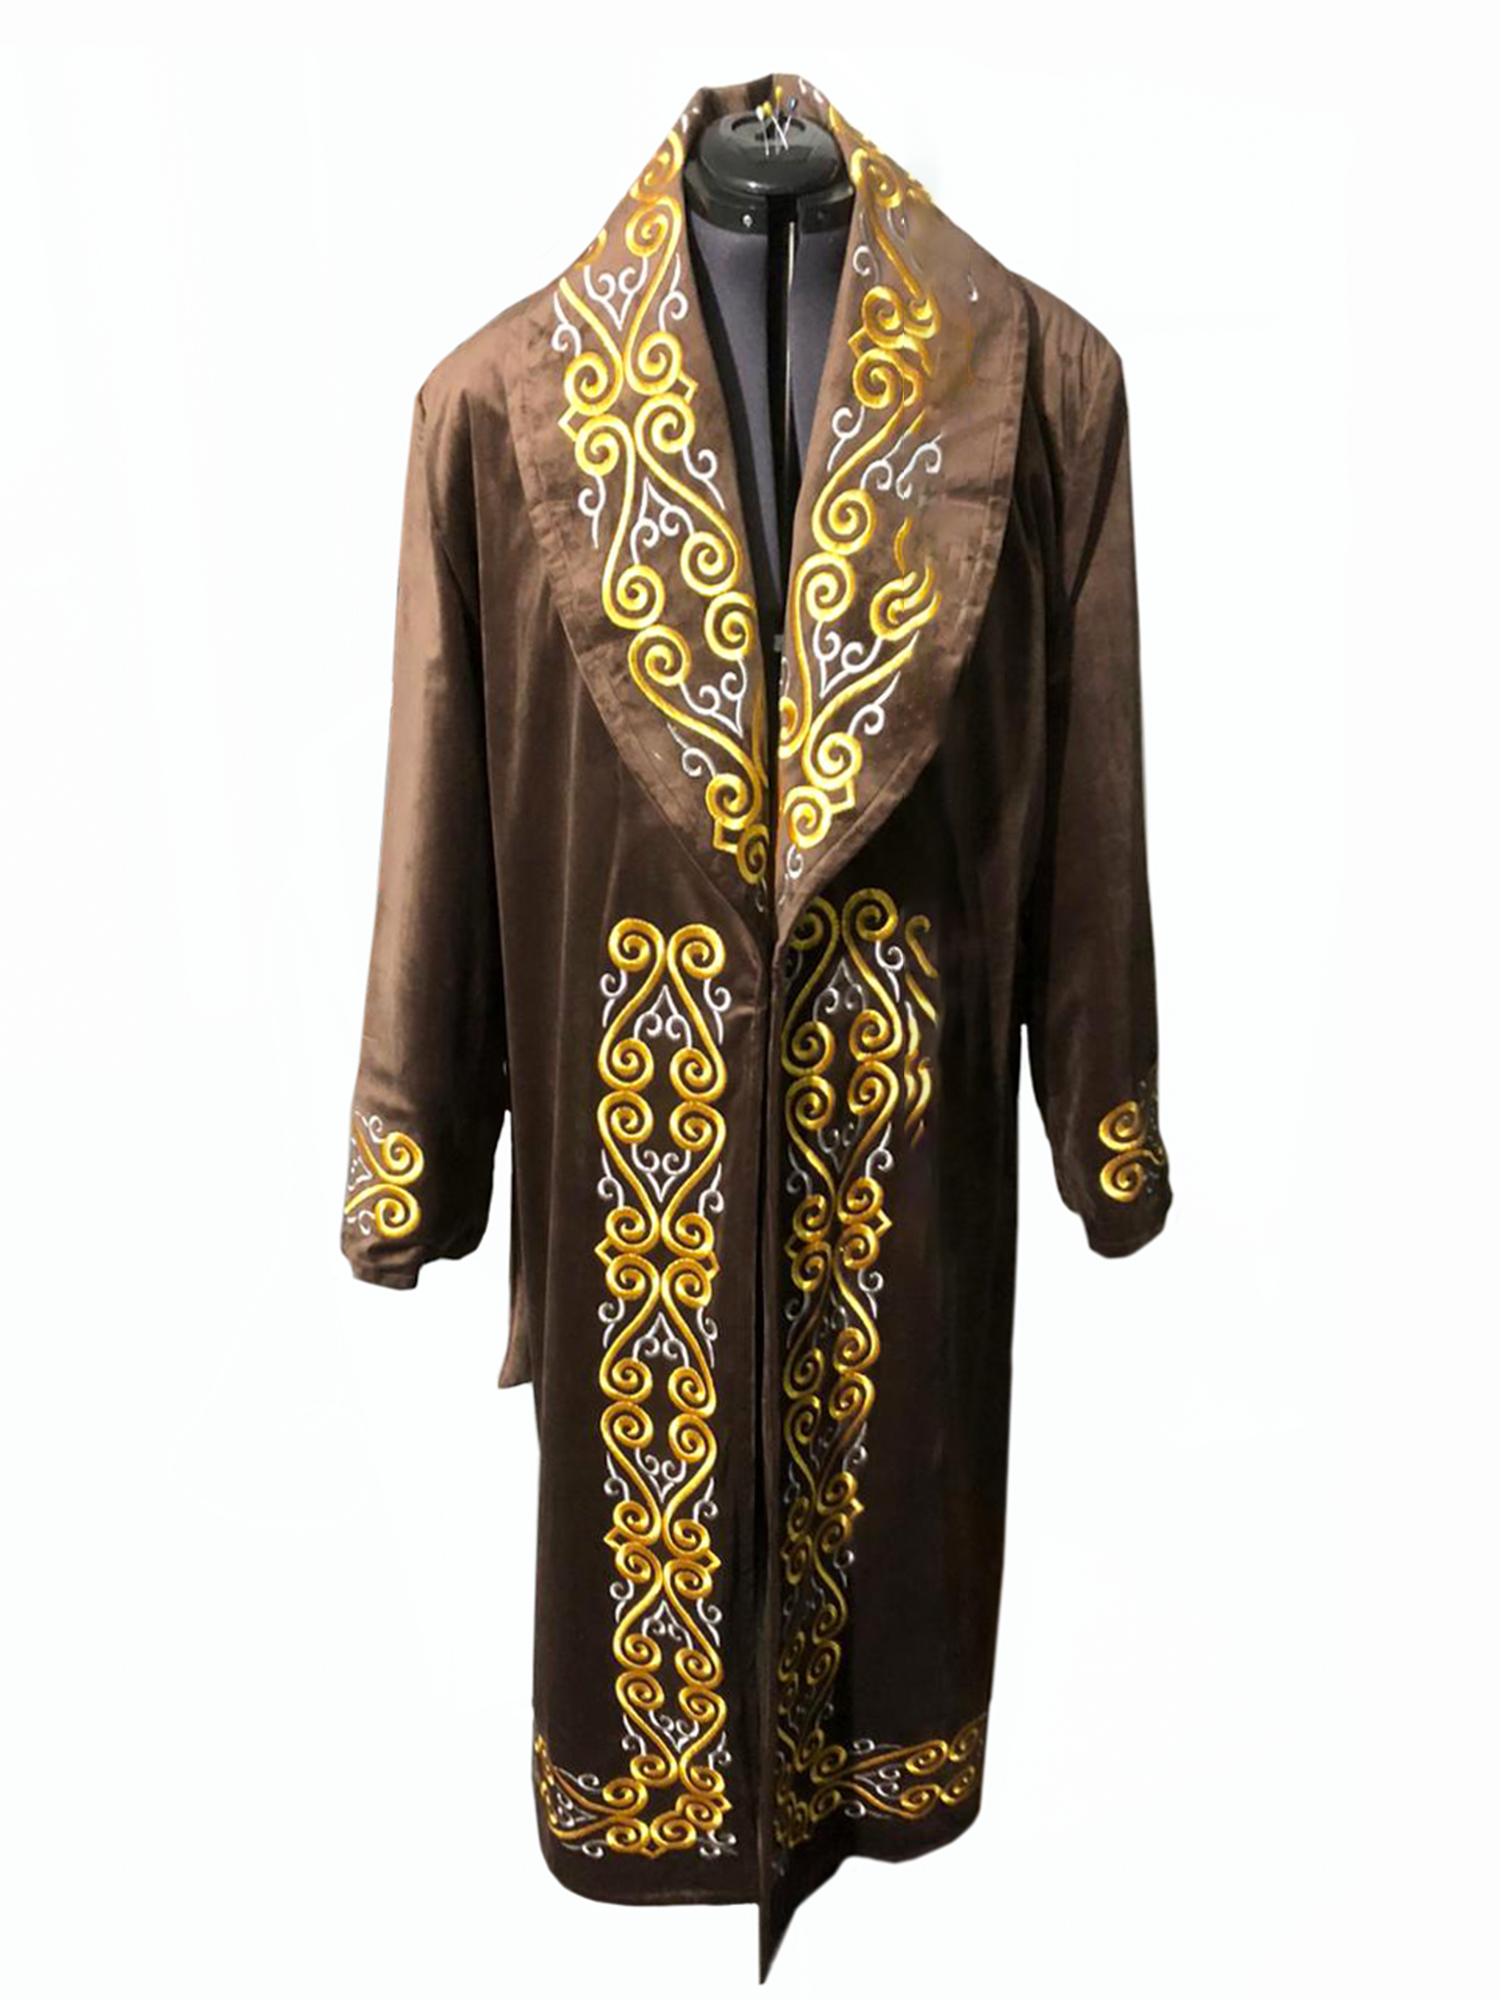 Gold Or Silve r Color Warming Long Overcoat for Men